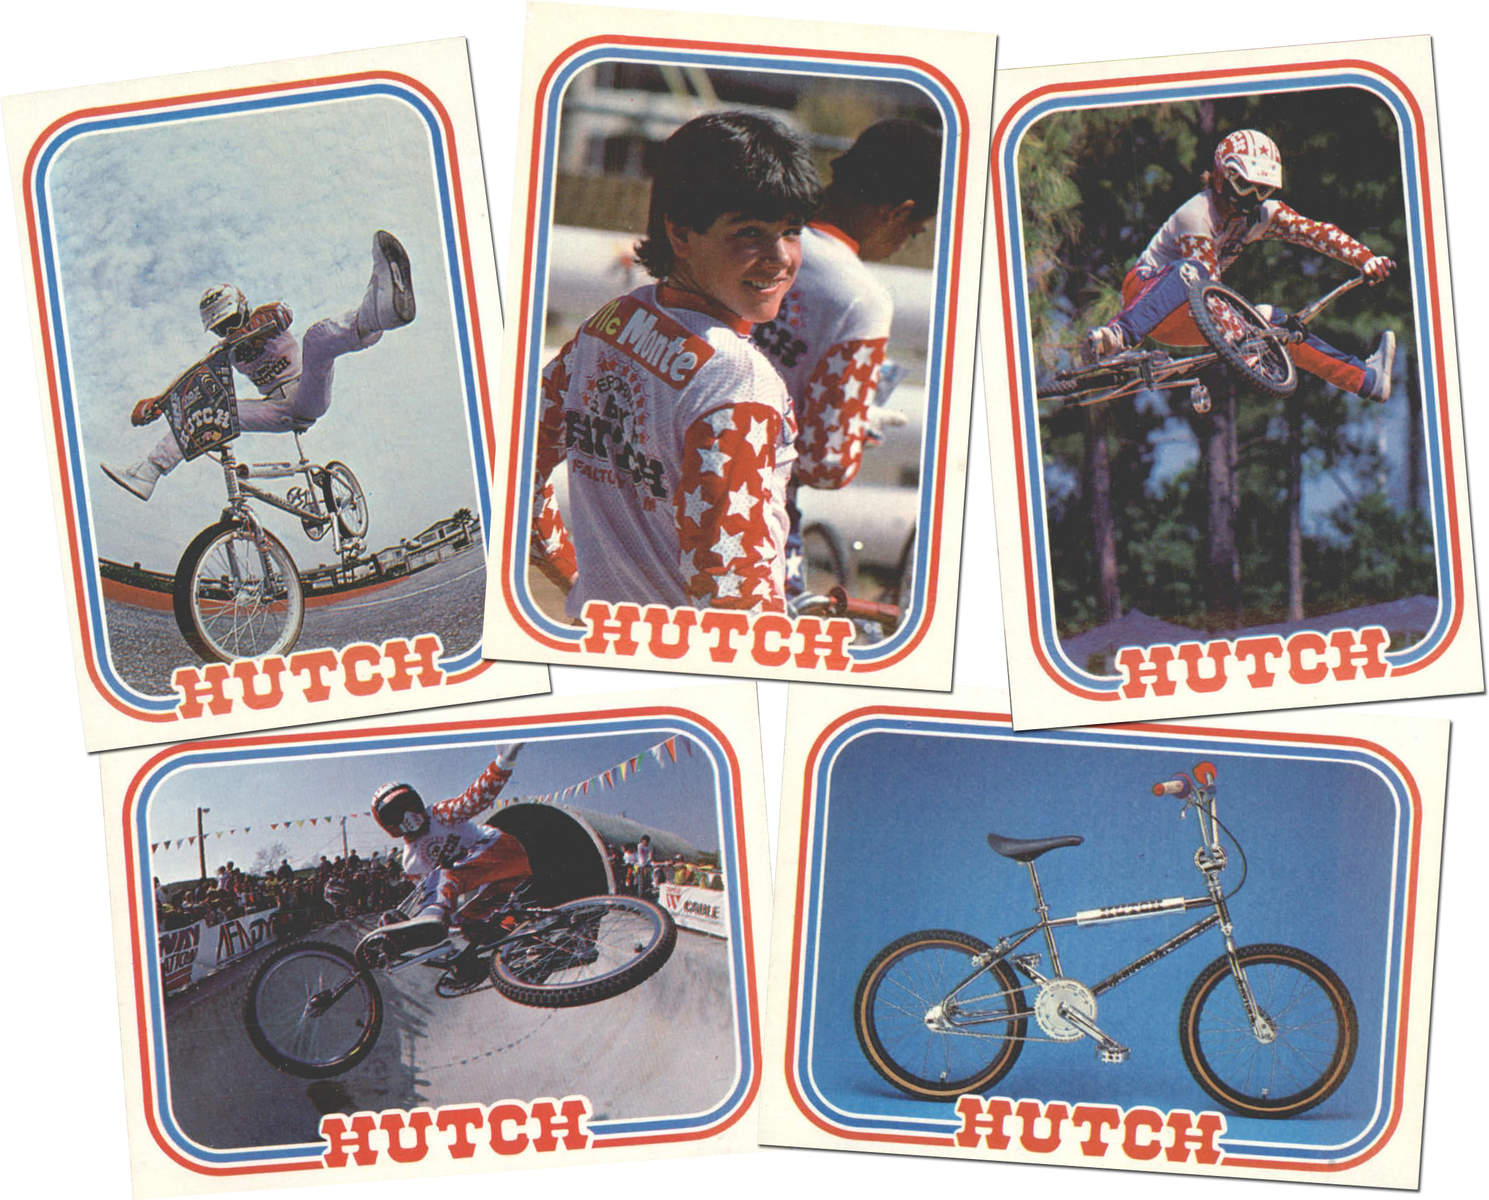 http://uploads.bmxmuseum.com/user-images/152/hutch5a0dc96a2e.jpg